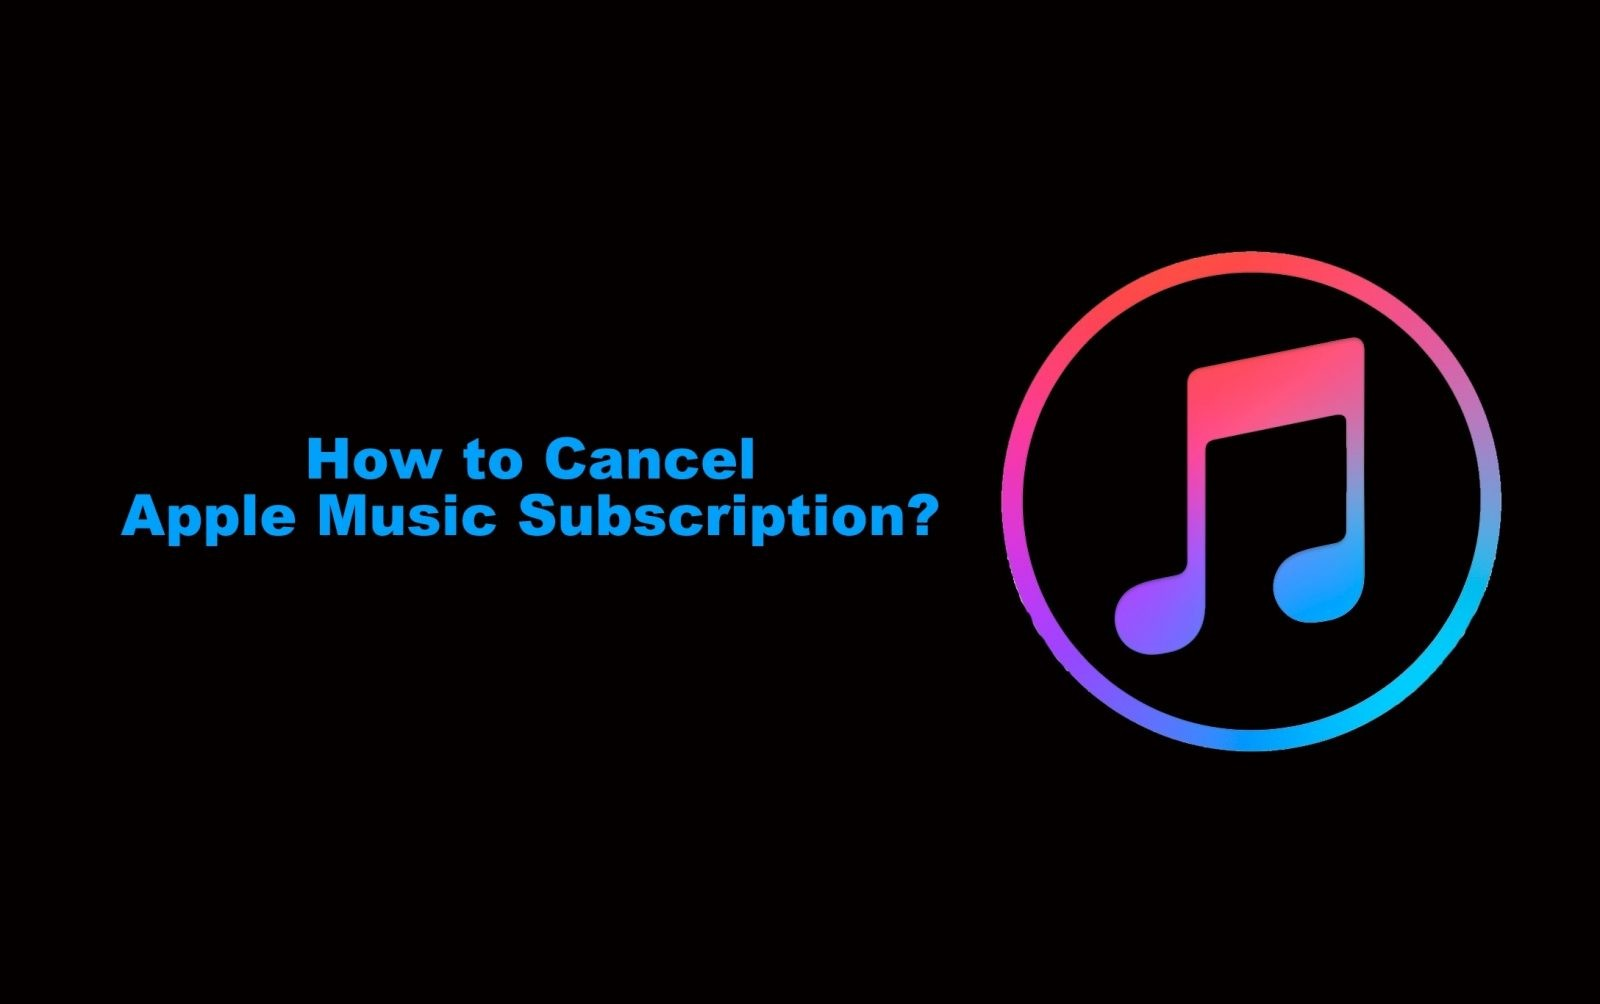 How to Cancel Apple Music Subscription in 4 Ways